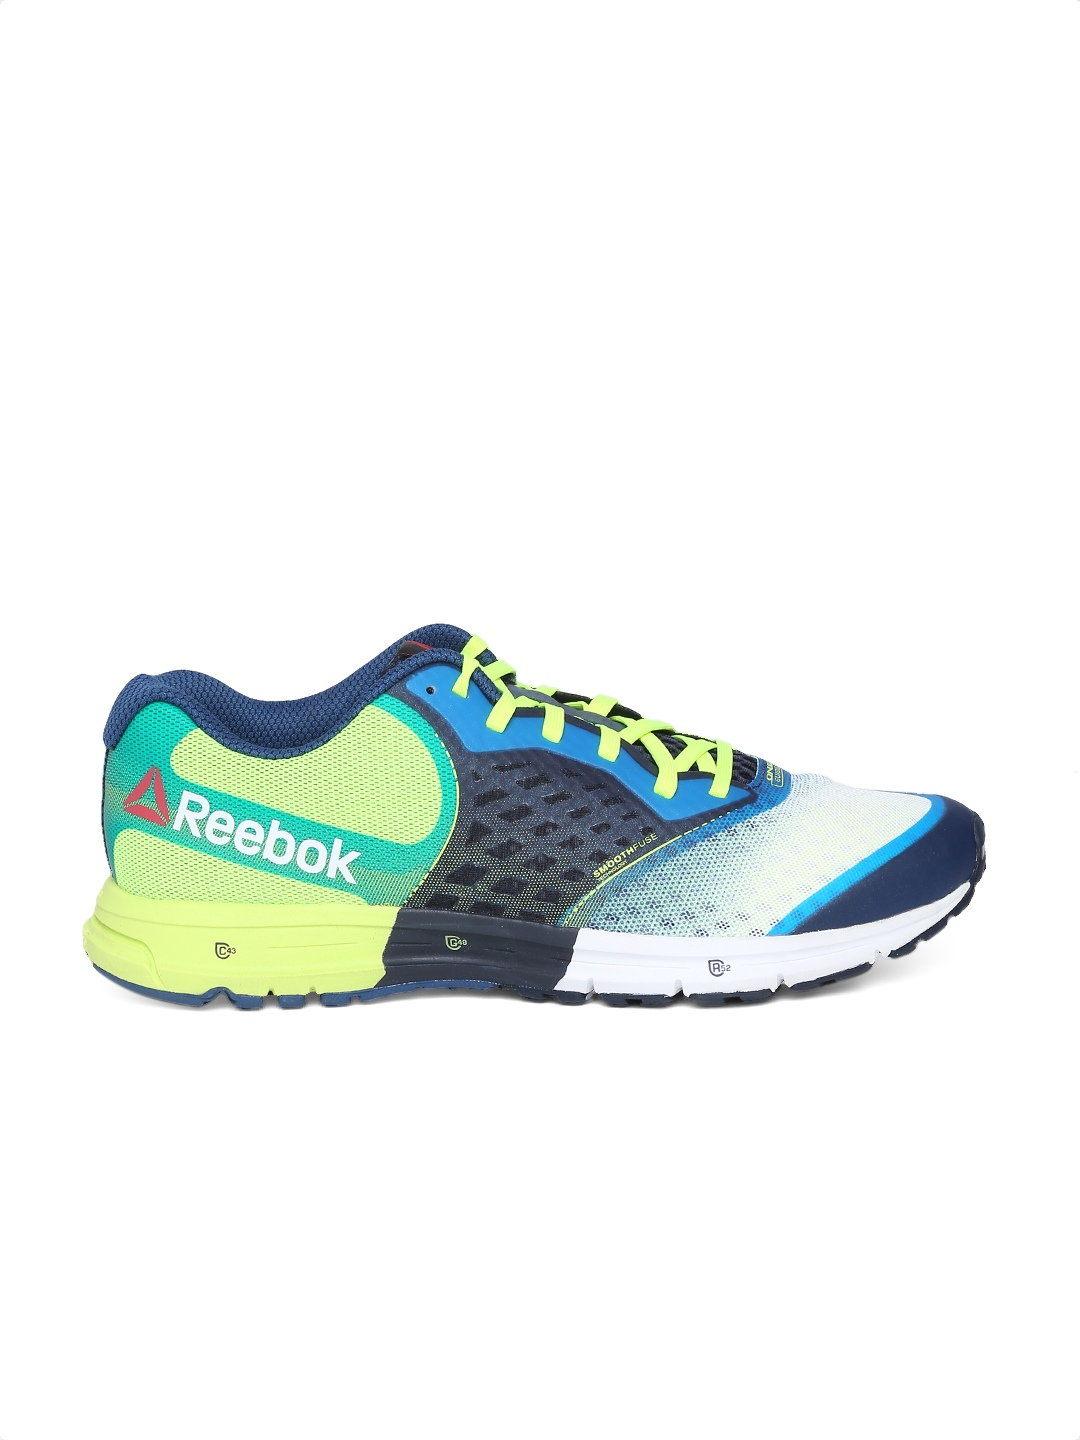 Reebok slippers online shopping